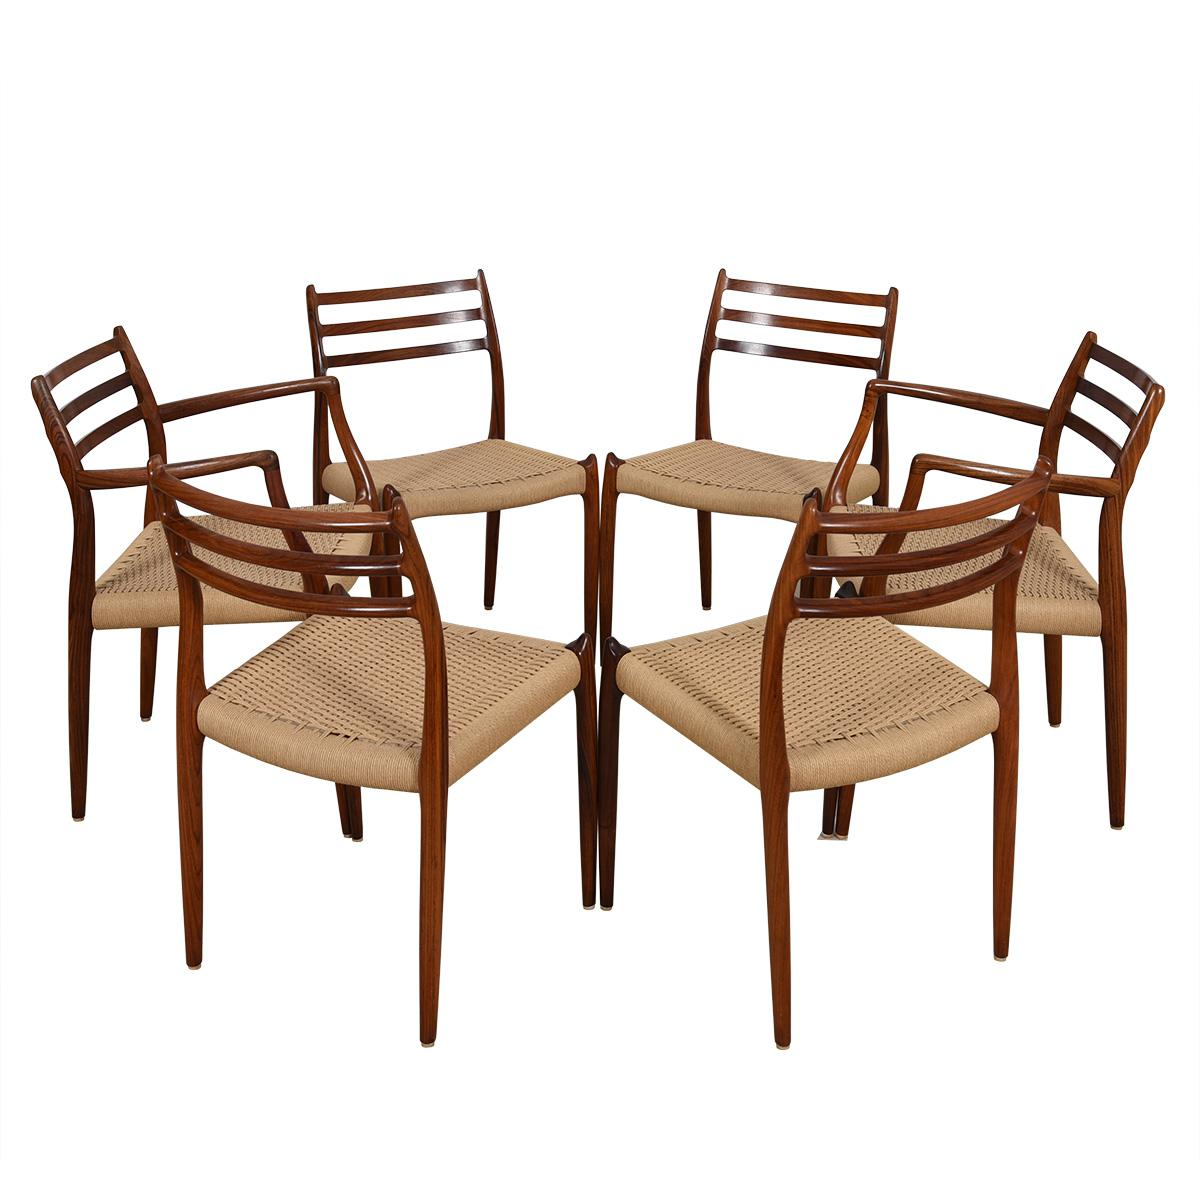 Set of 6 Danish Modern Dining Chairs by Niels Moller in Rosewood